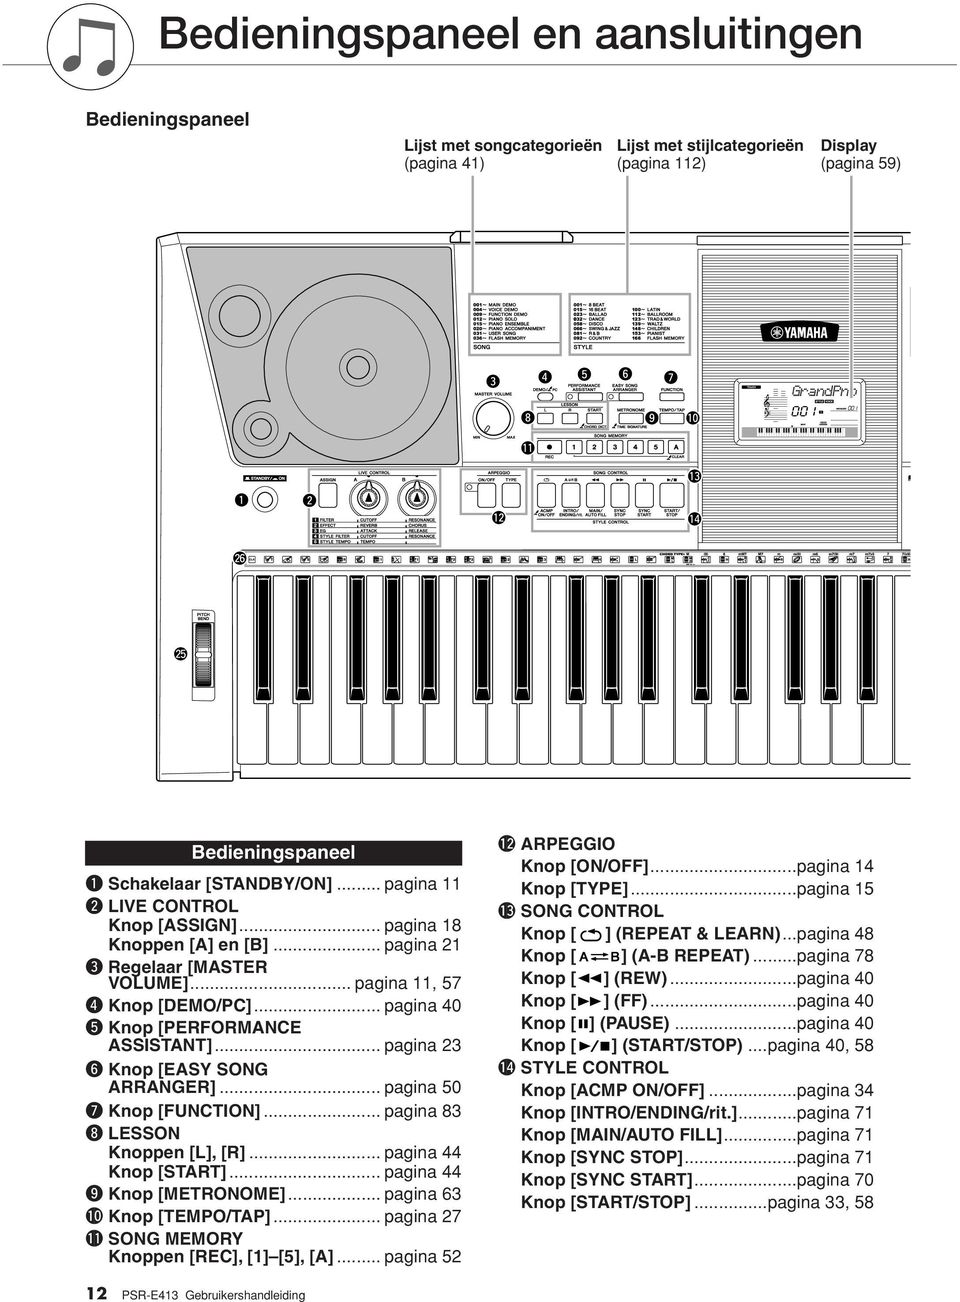 .. pagina 23 y Knop [EASY SONG ARRANGER]... pagina 50 u Knop [FUNCTION]... pagina 83 i LESSON Knoppen [L], [R]... pagina 44 Knop [START]... pagina 44 o Knop [METRONOME]... pagina 63!